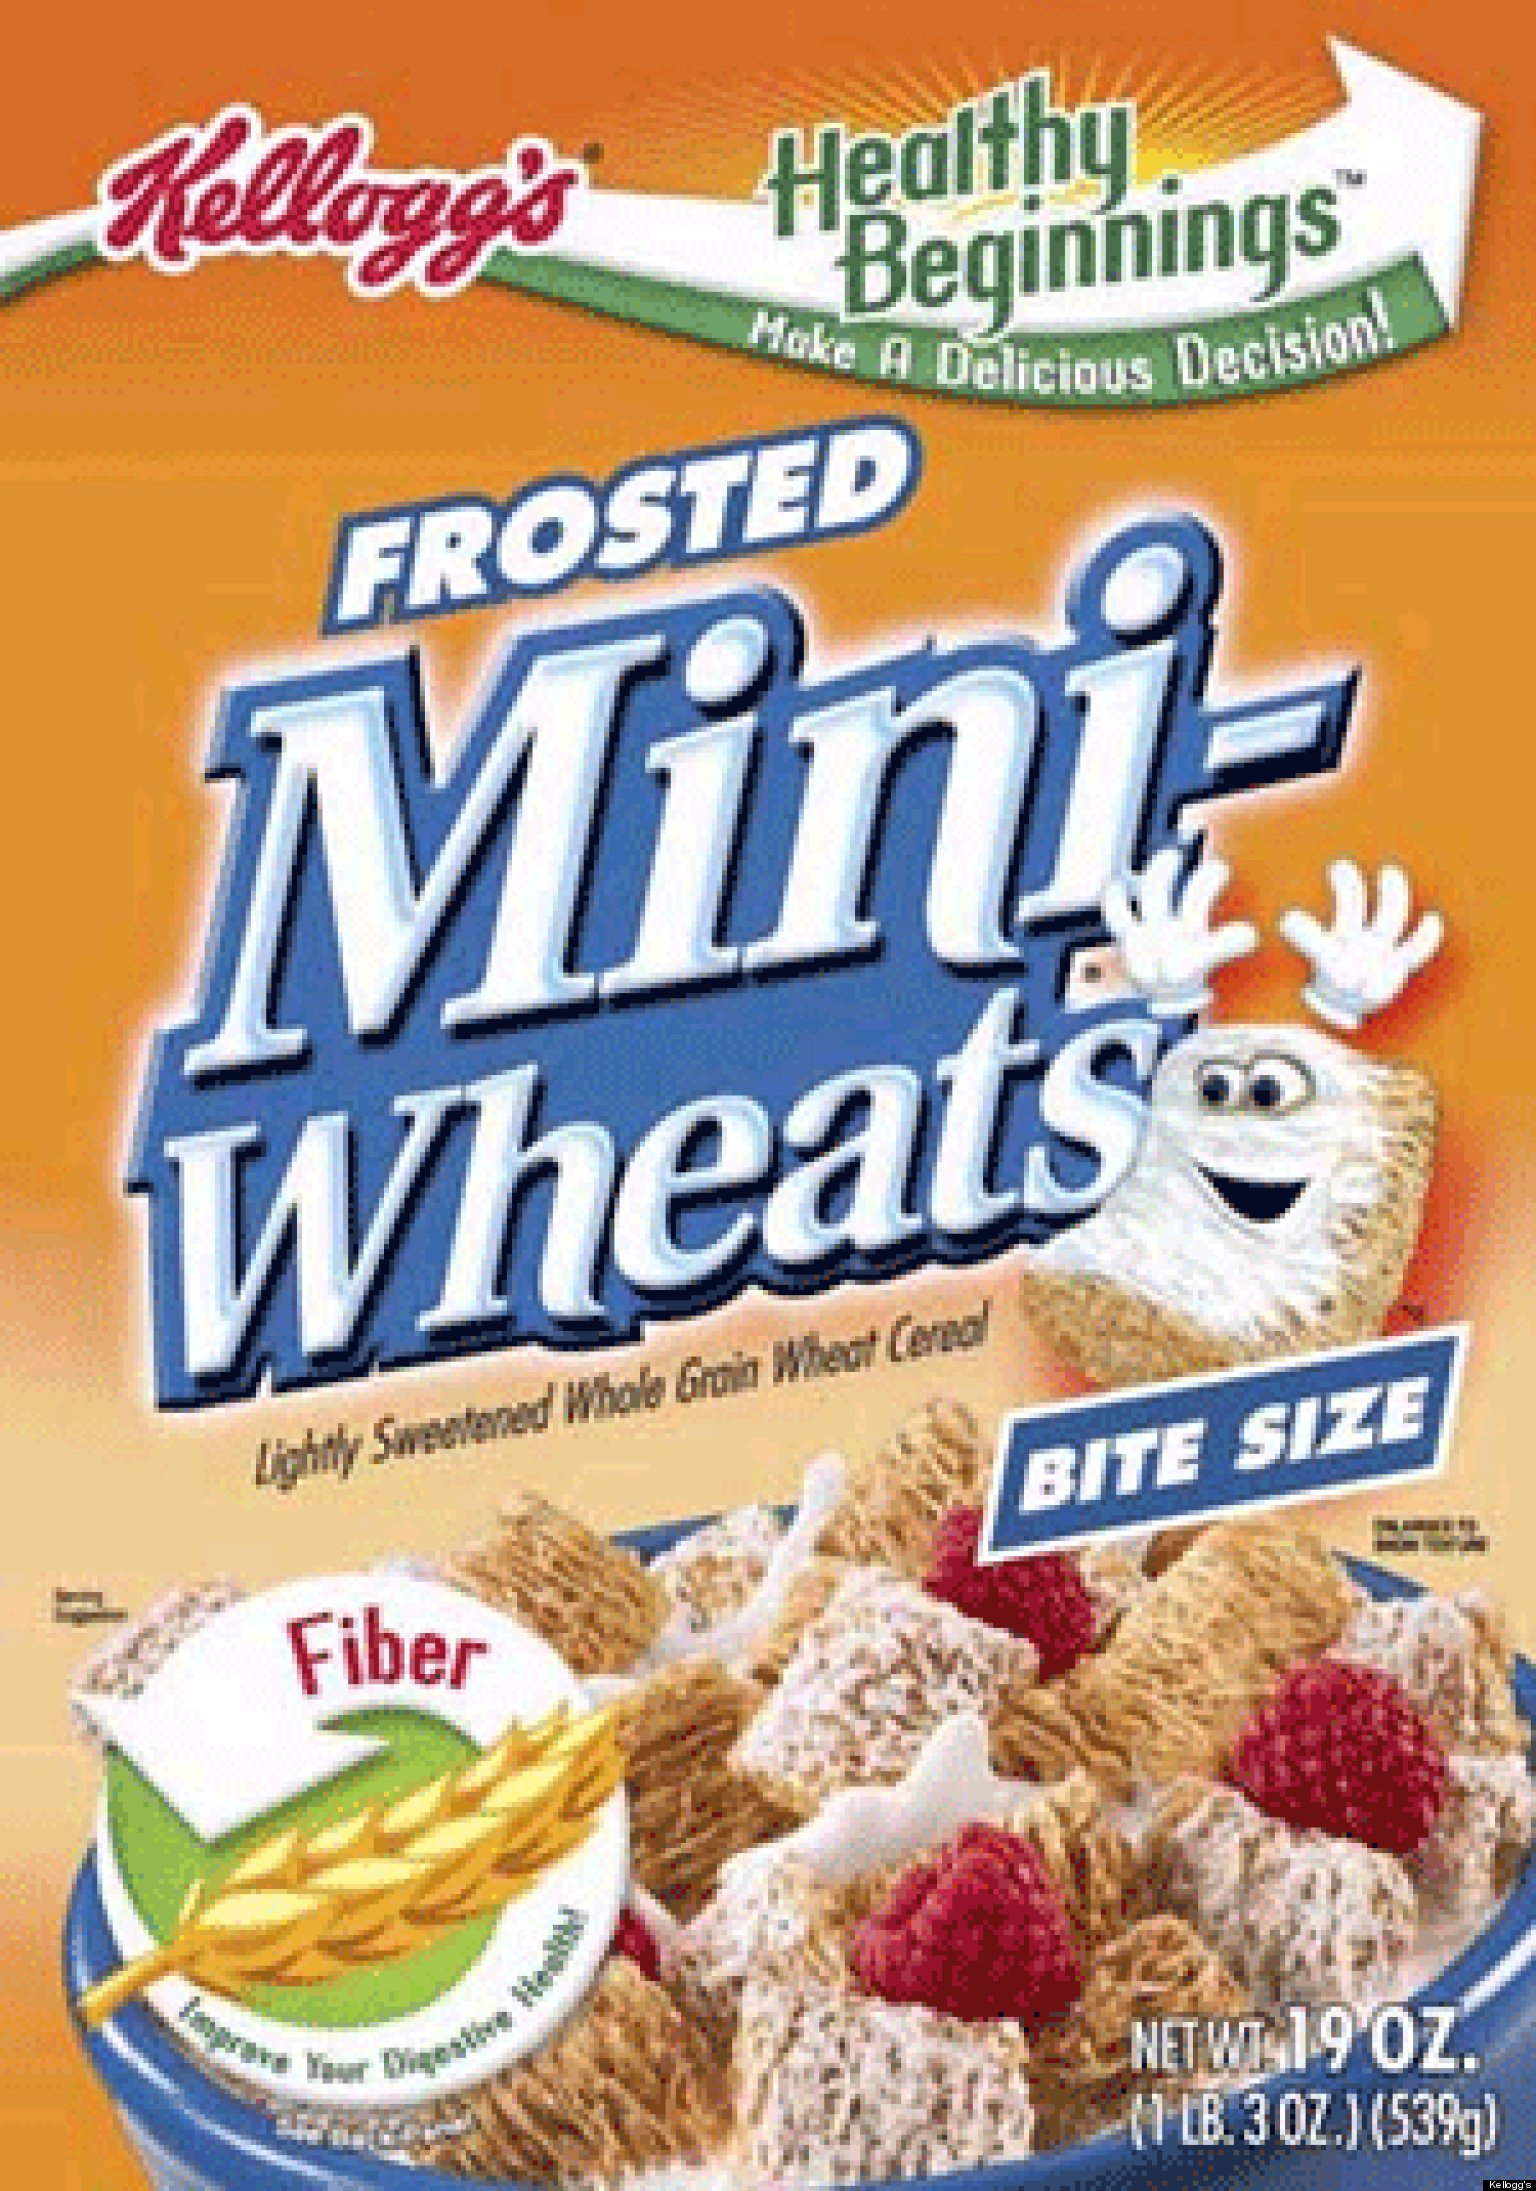 Mini-Wheats are the breakfast cereal made to fill you on Big Days. With ten layers of whole wheat and frosted just right, they're the perfect way to start your Big Day!